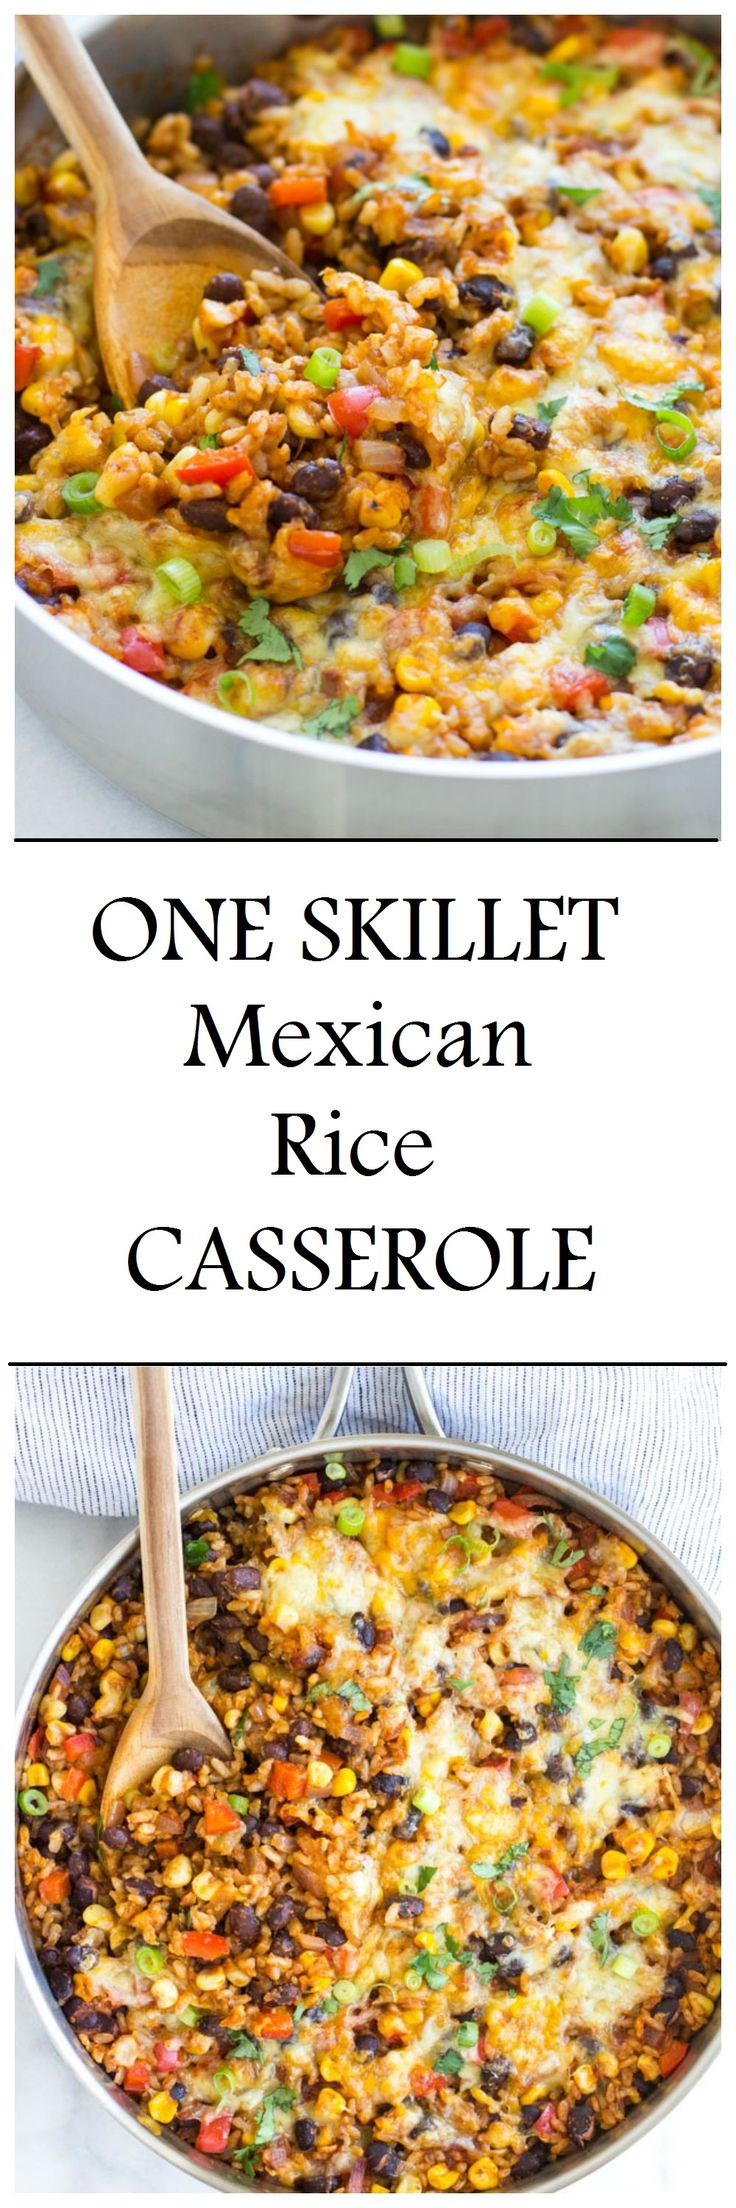 508 best mexican food recipes images on pinterest barley salad one skillet mexican rice casserole super easy to make almost zero clean up and kid approved forumfinder Choice Image